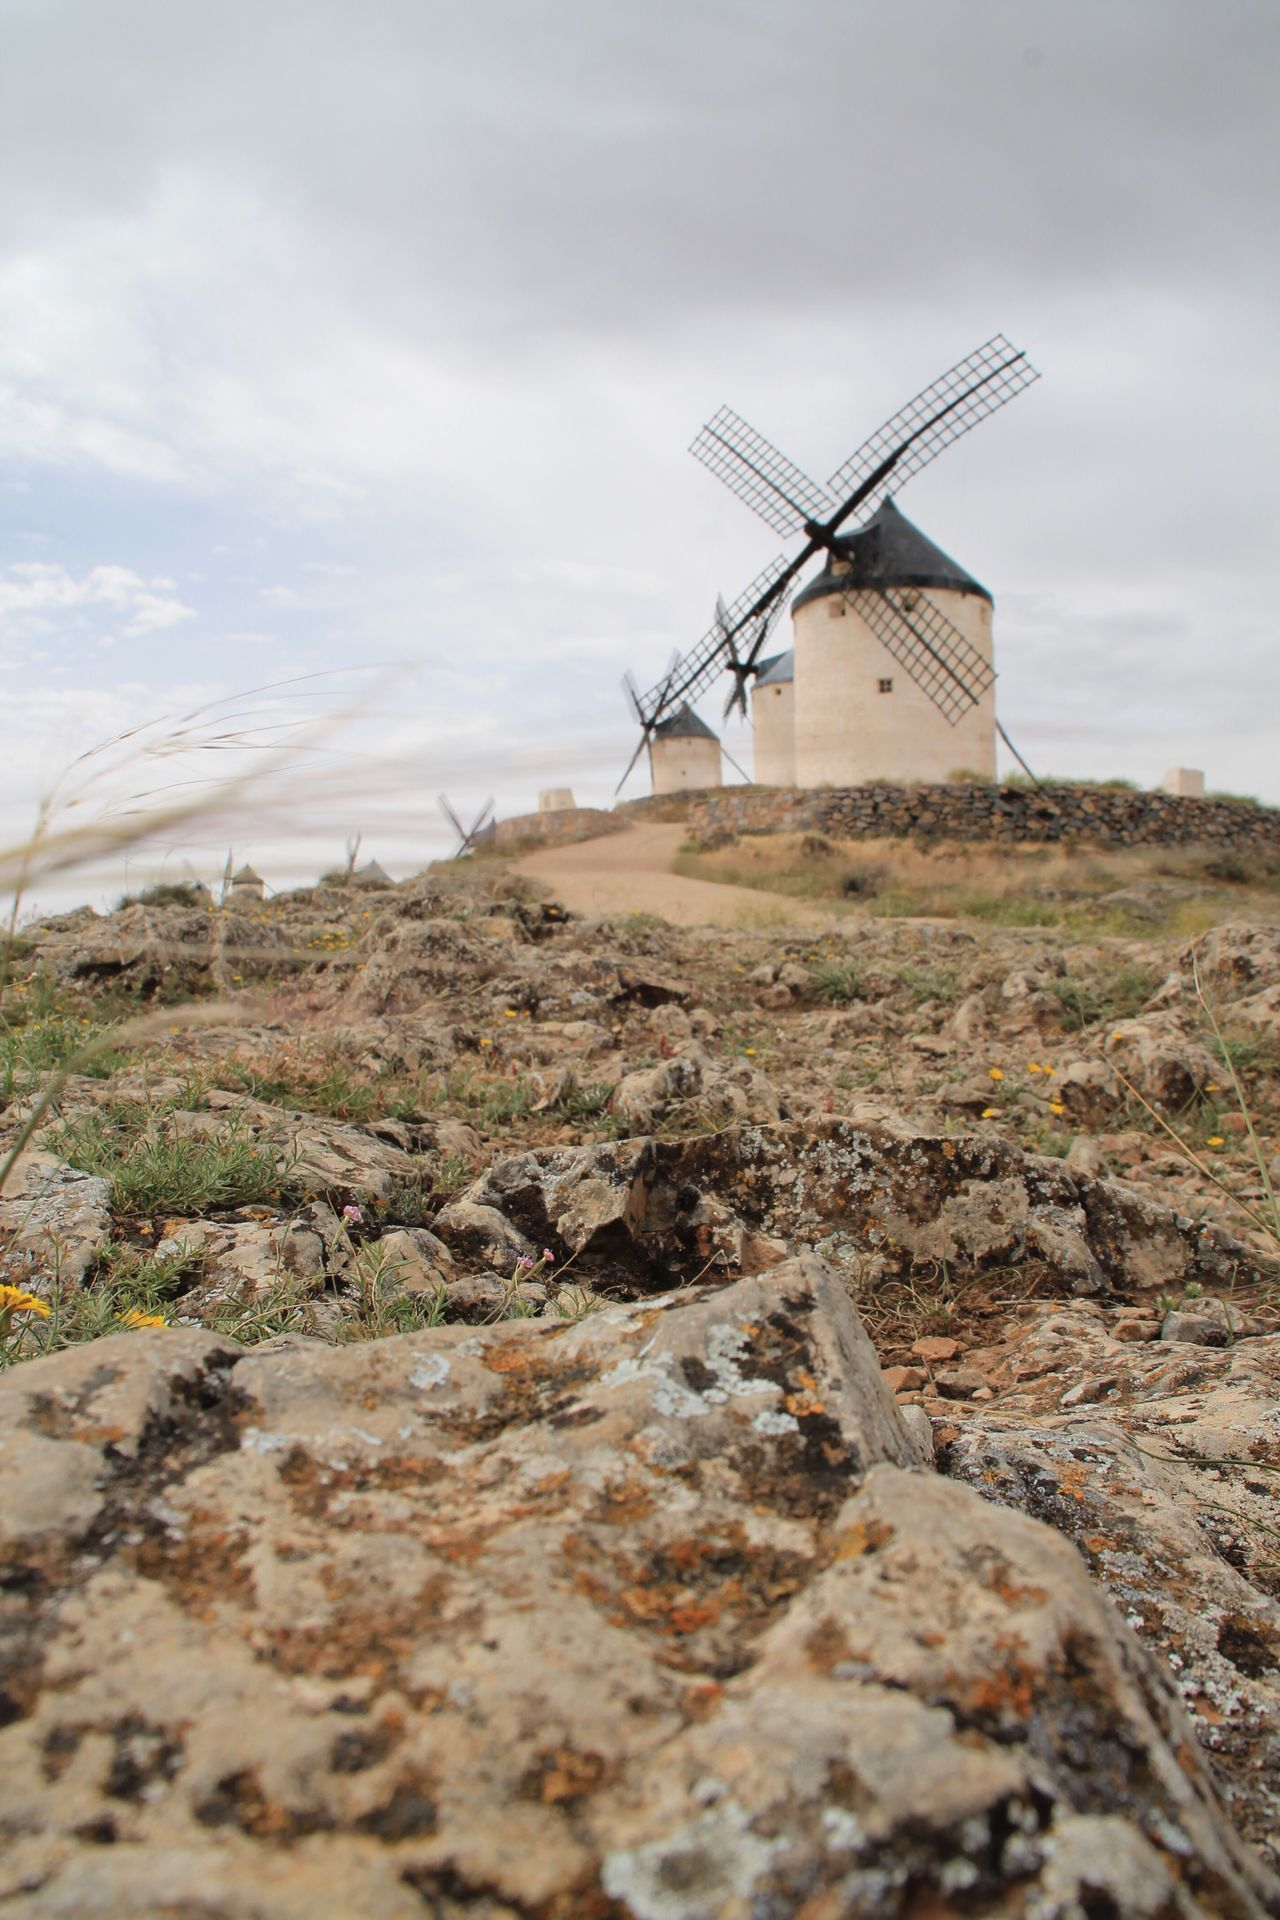 Windmill Sky Cloud - Sky Wind Power Day Field Outdoors Traditional Windmill Landscape Nature No People Molinos La Mancha Don Quijote Enjoying Life Check This Out Hanging Out Taking Photos Travel Destinations Built Structure Windmill Consuegra Rural Scene Architecture Beauty In Nature